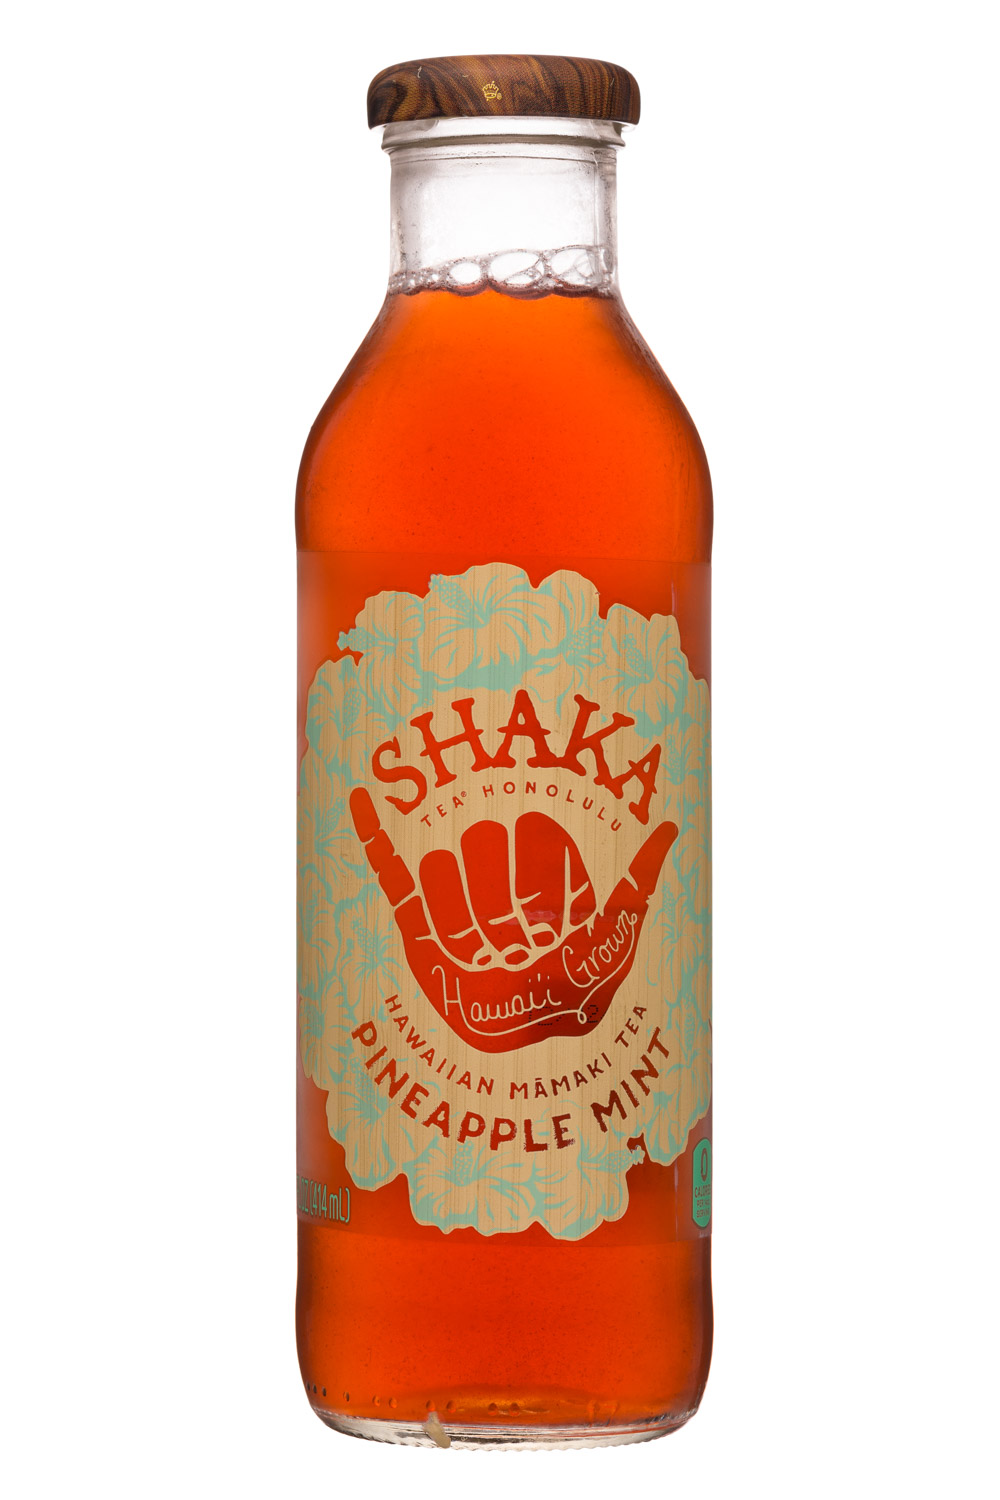 Shaka Tea: Shaka-14oz-MamakiTea-PineappleMint-Front